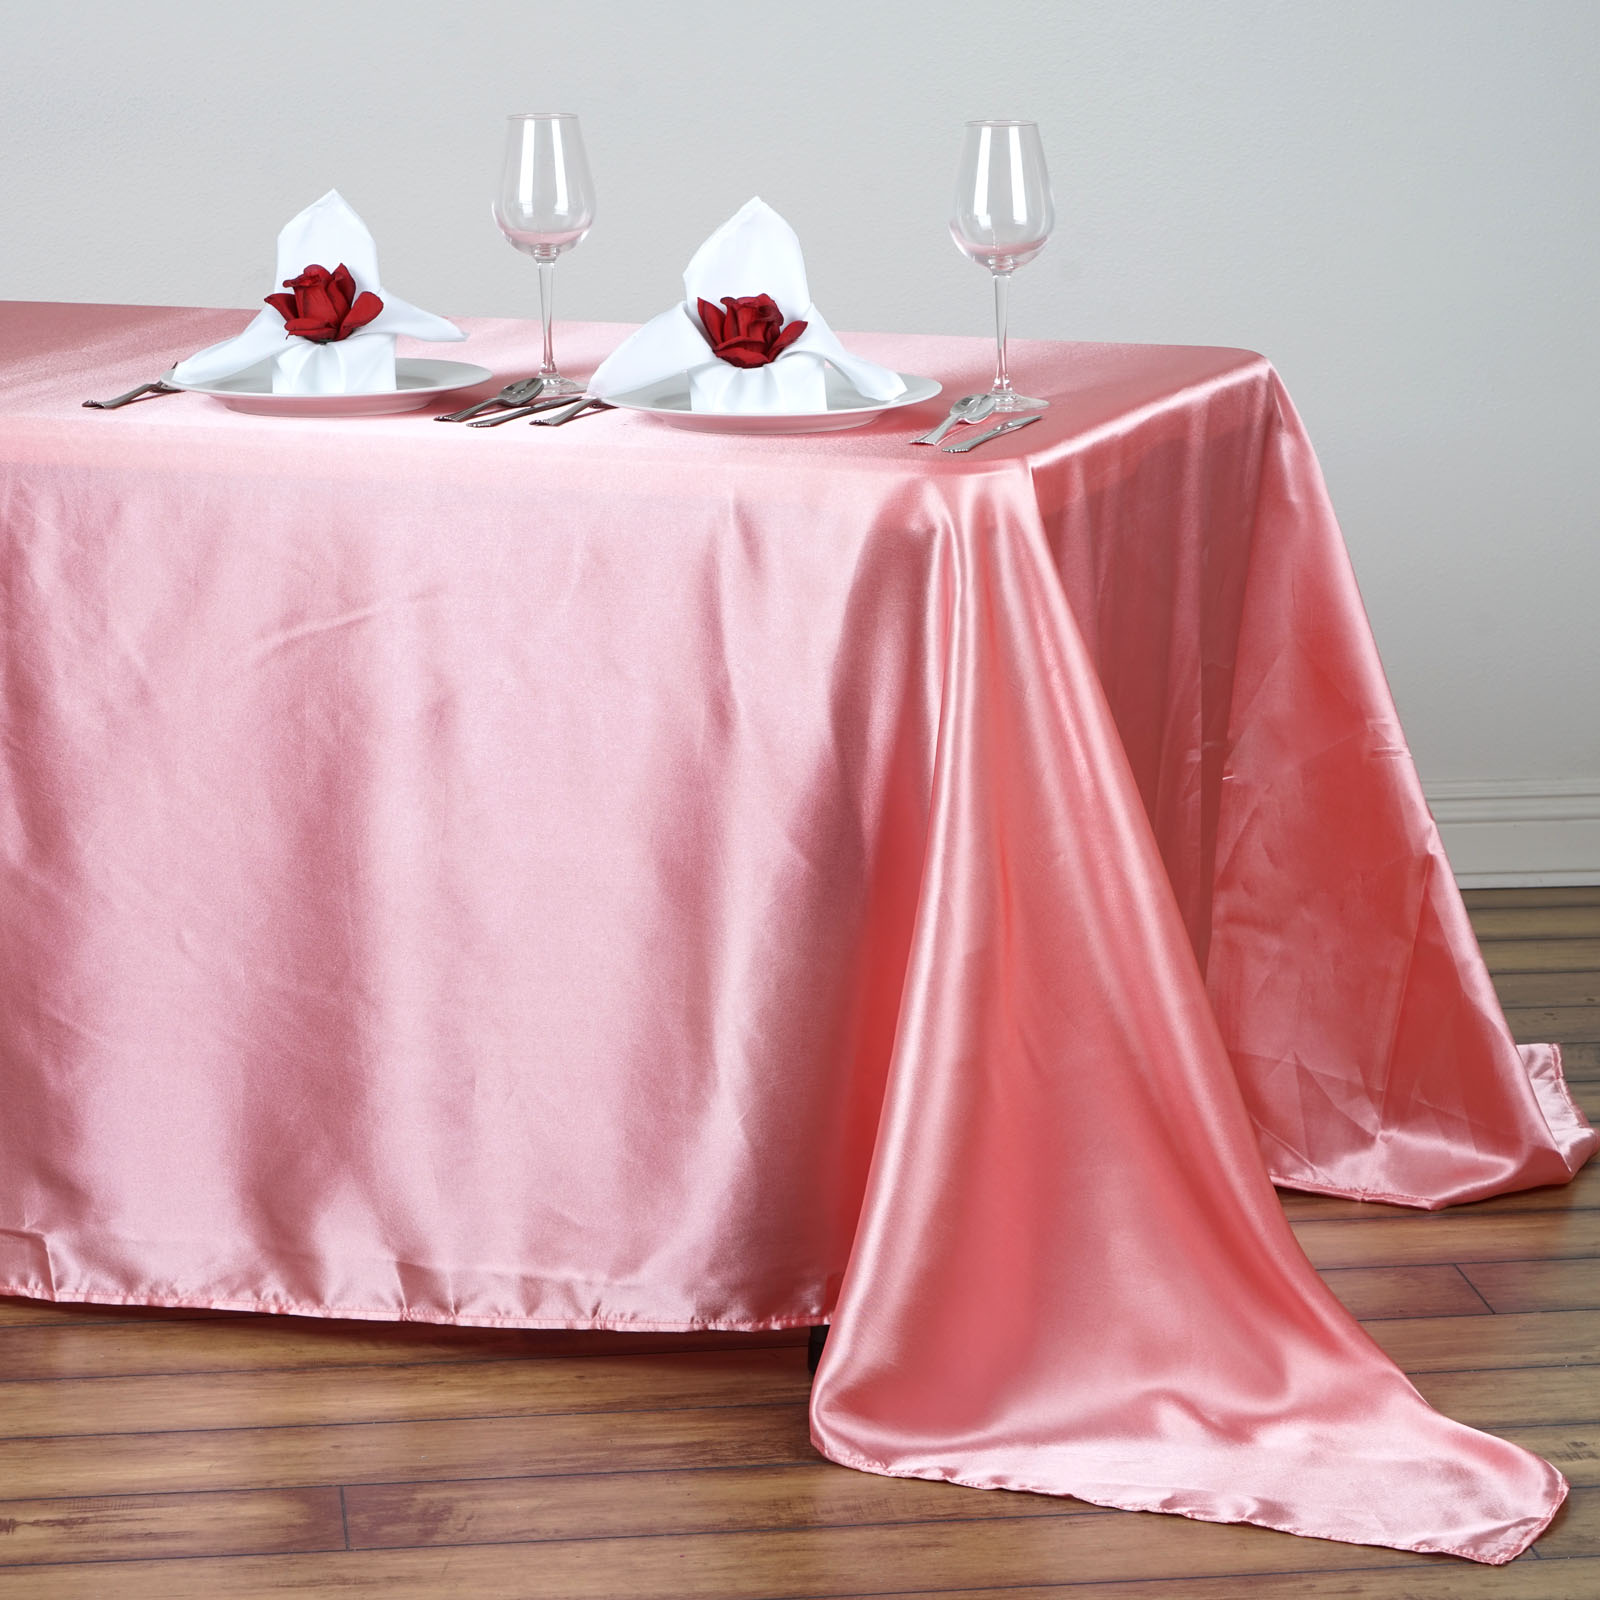 90x132-034-Rectangle-Satin-Tablecloth-For-Wedding-Party-Banquet-Events-Decoration thumbnail 67